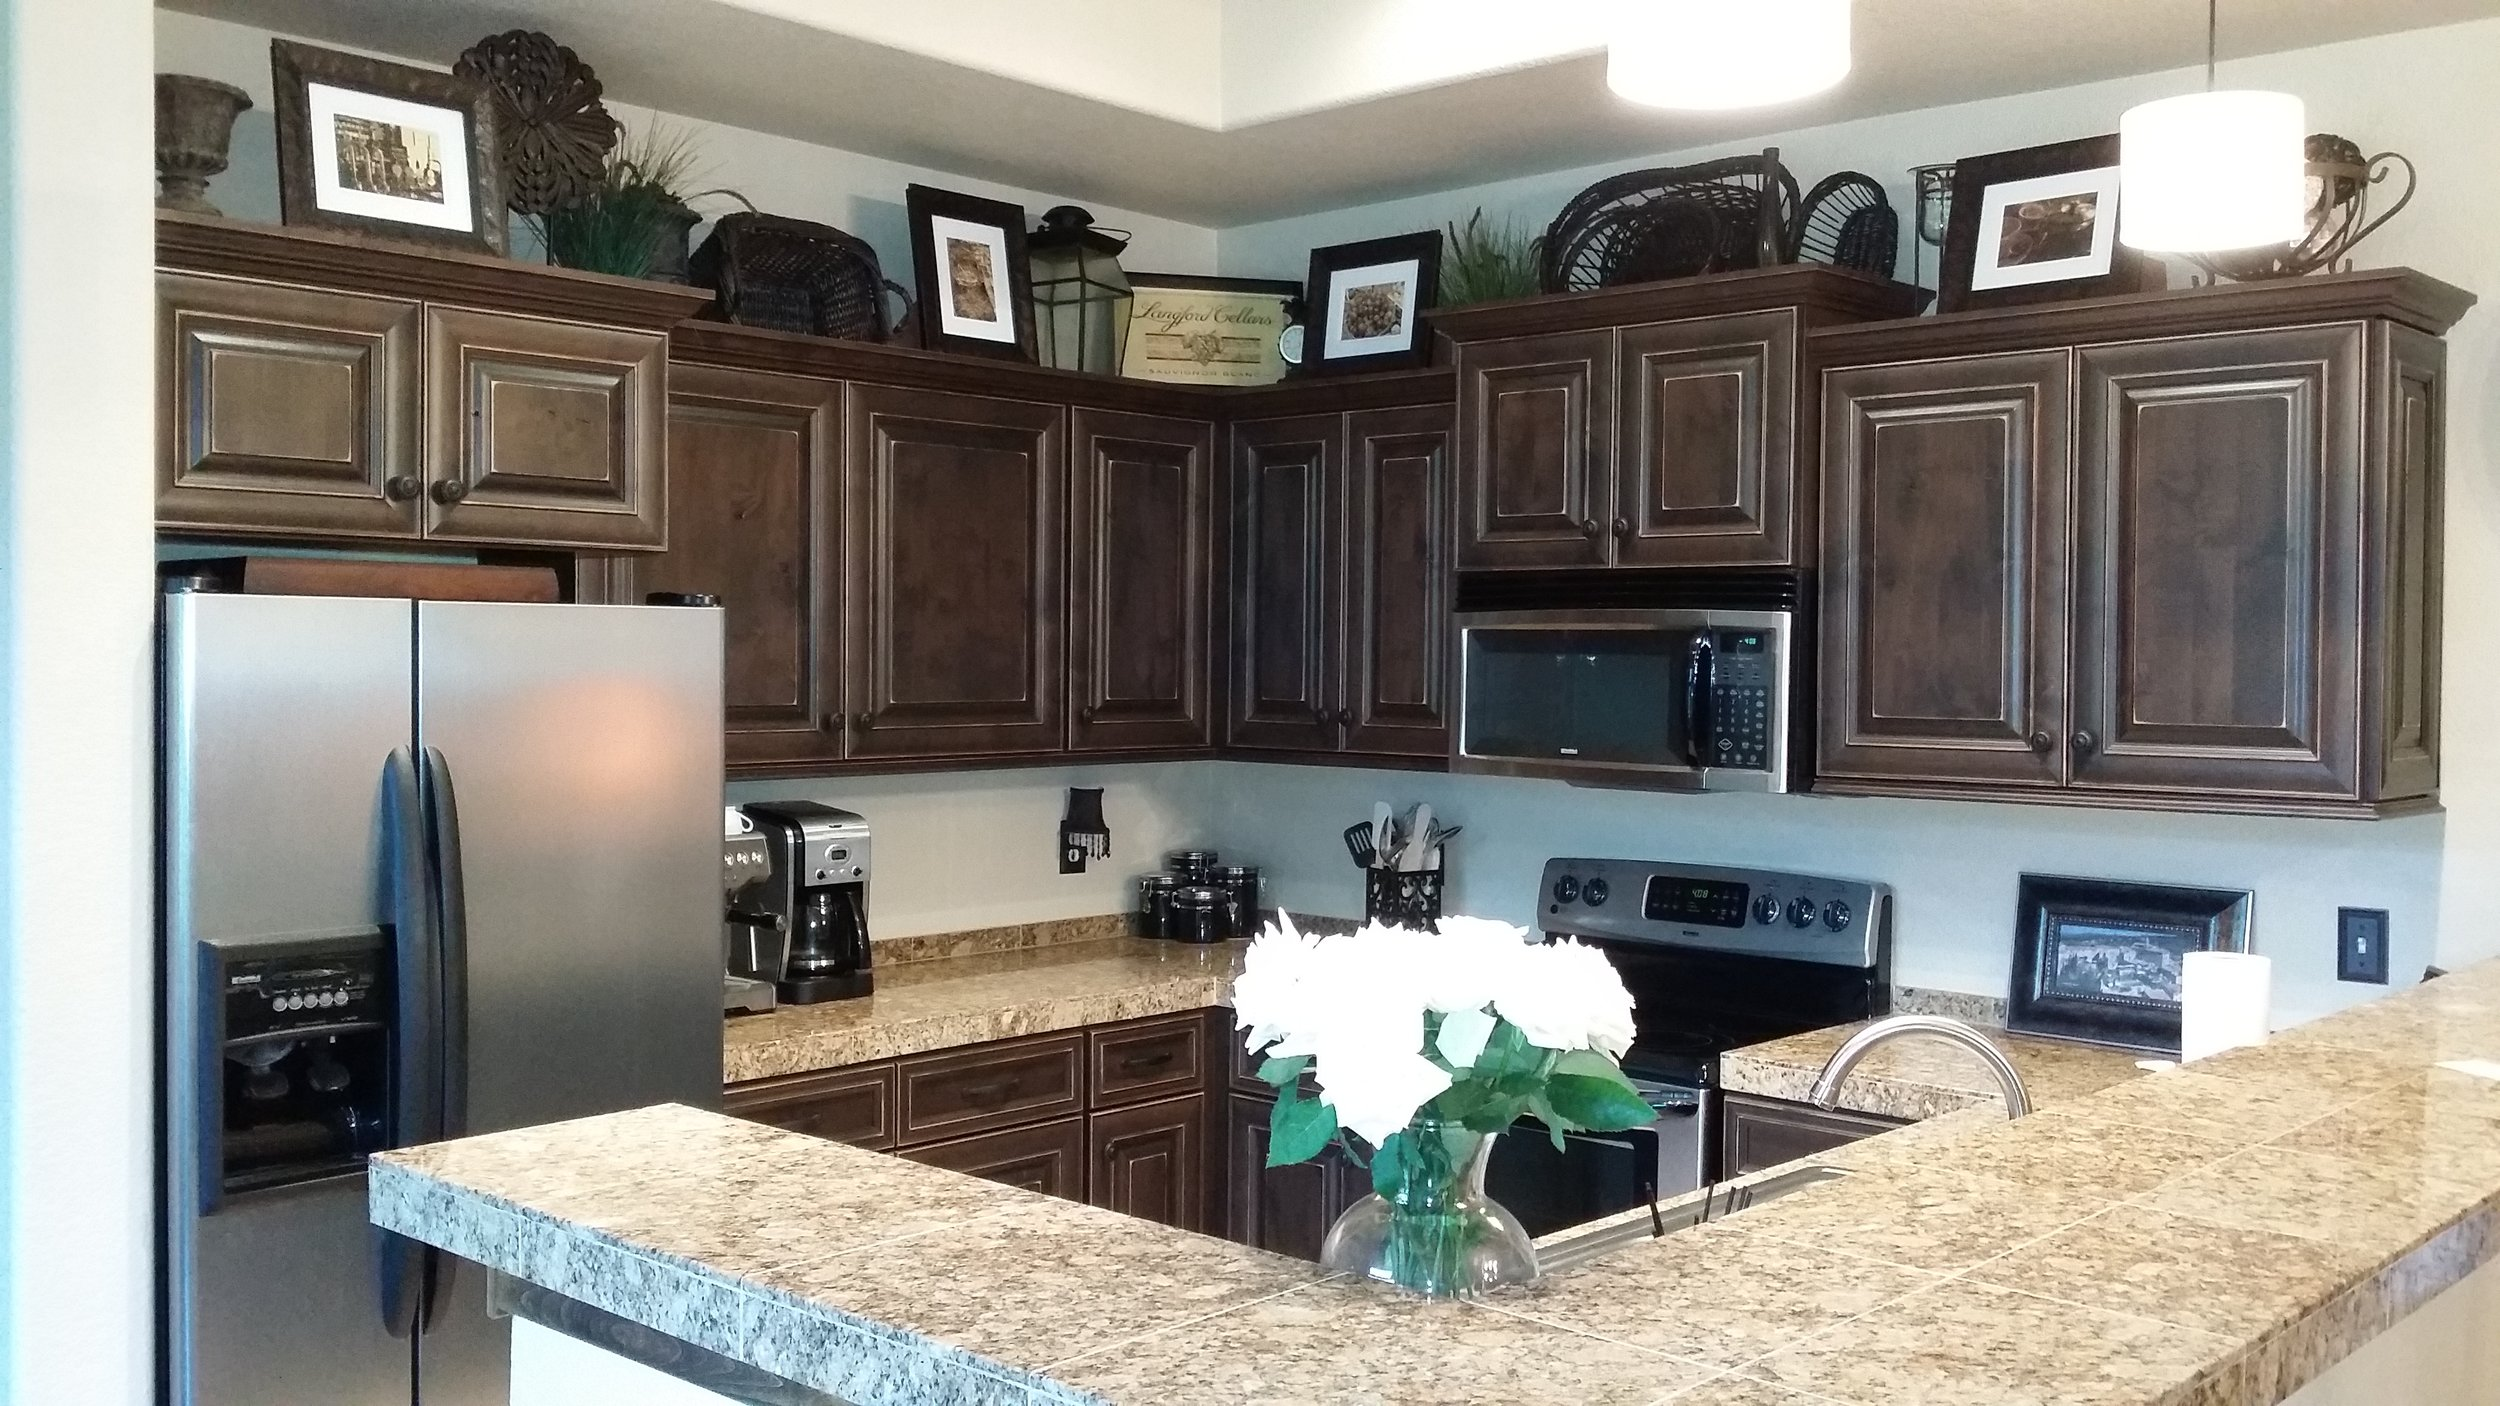 This traditional craftsman style kitchen features over sized micro and fridge cabinets with crown moulding and under cabinet trim. It also has full overlay spacing and a rub through finish.